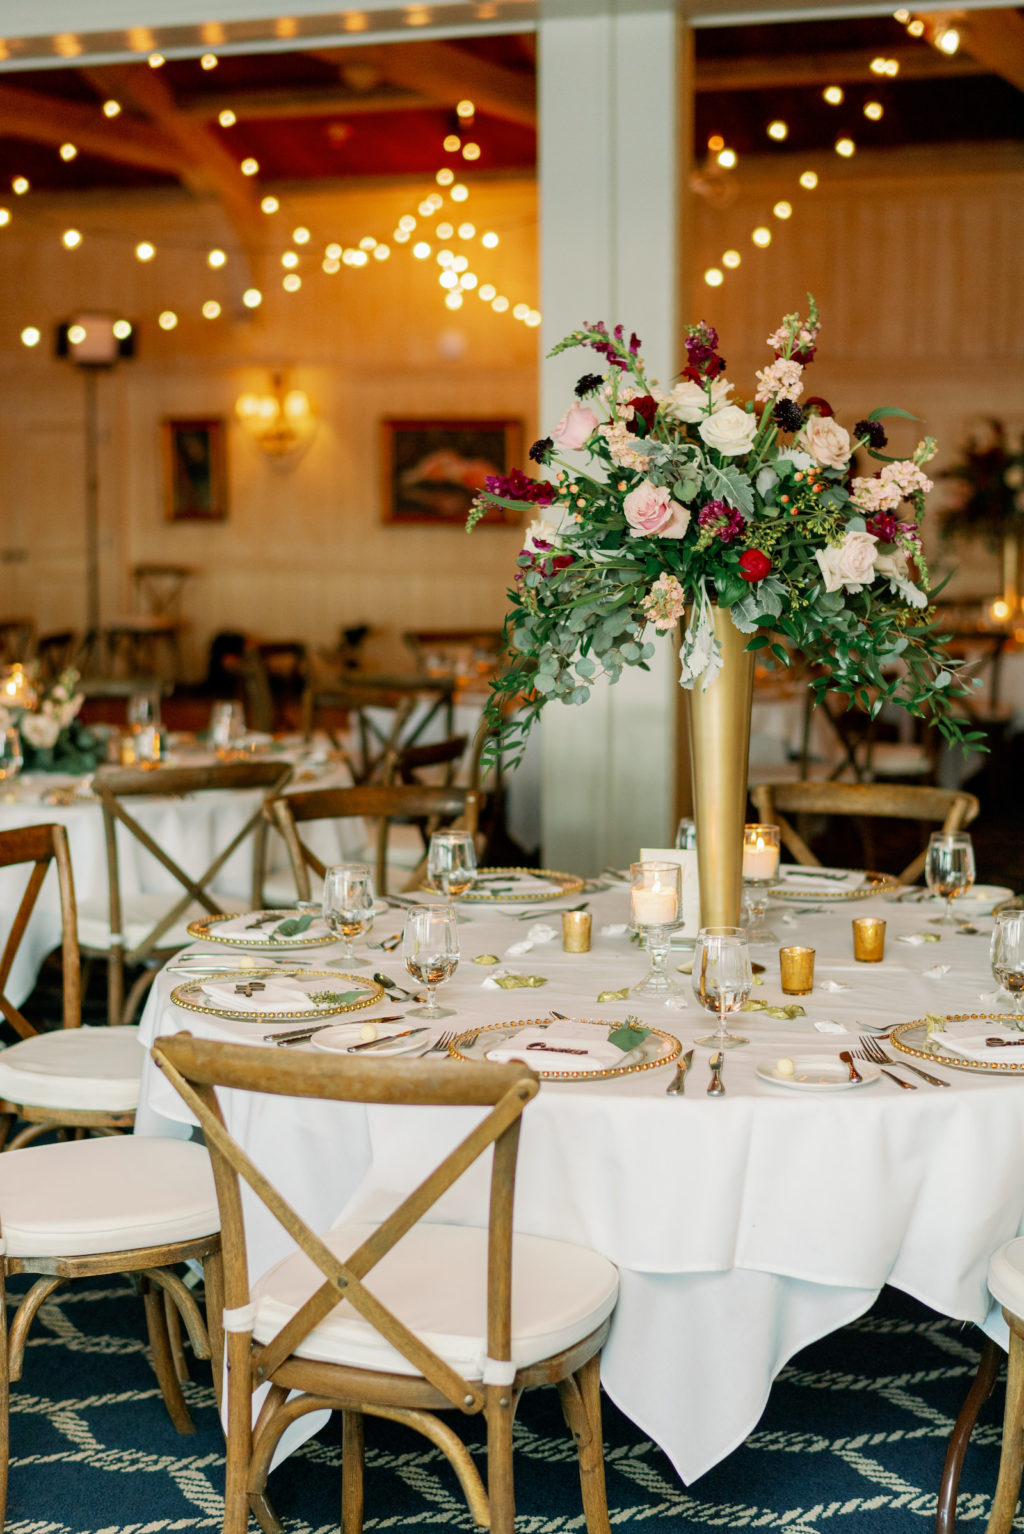 Rustic Romantic Wedding Reception Decor, Wooden Cross Back Chairs, Tall Gold Vase with White, Red, Blush Pink Roses, Greenery Floral Centerpiece   Tampa Bay Wedding Rentals A Chair Affair